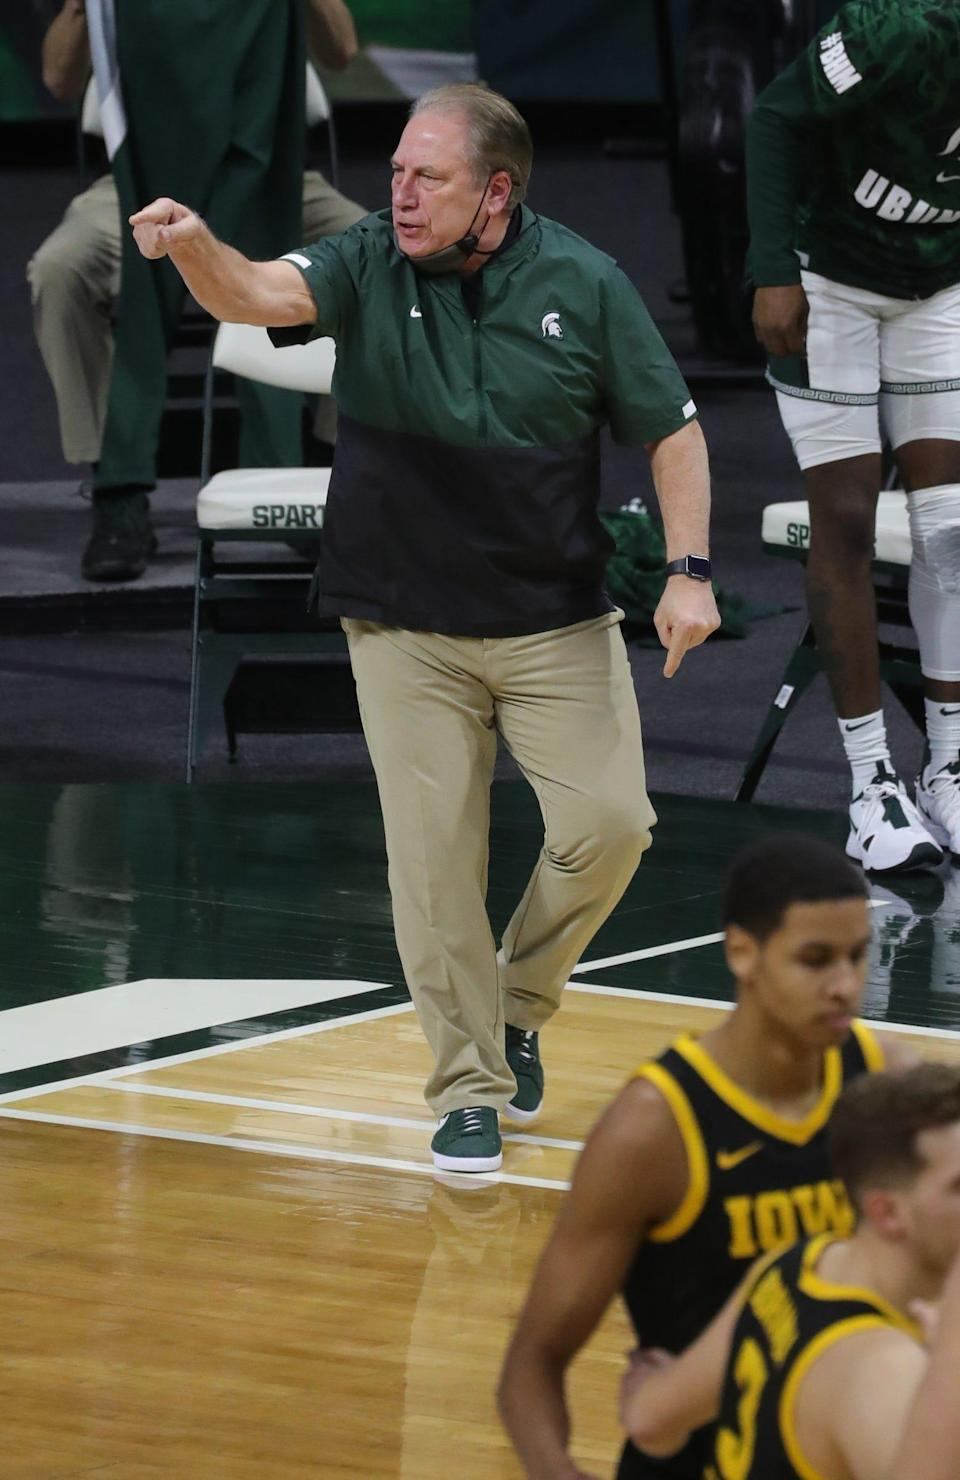 Michigan State Spartans head coach Tom Izzo on the bench during action against the Iowa Hawkeyes at Breslin Center on Saturday, Feb. 13, 2021.